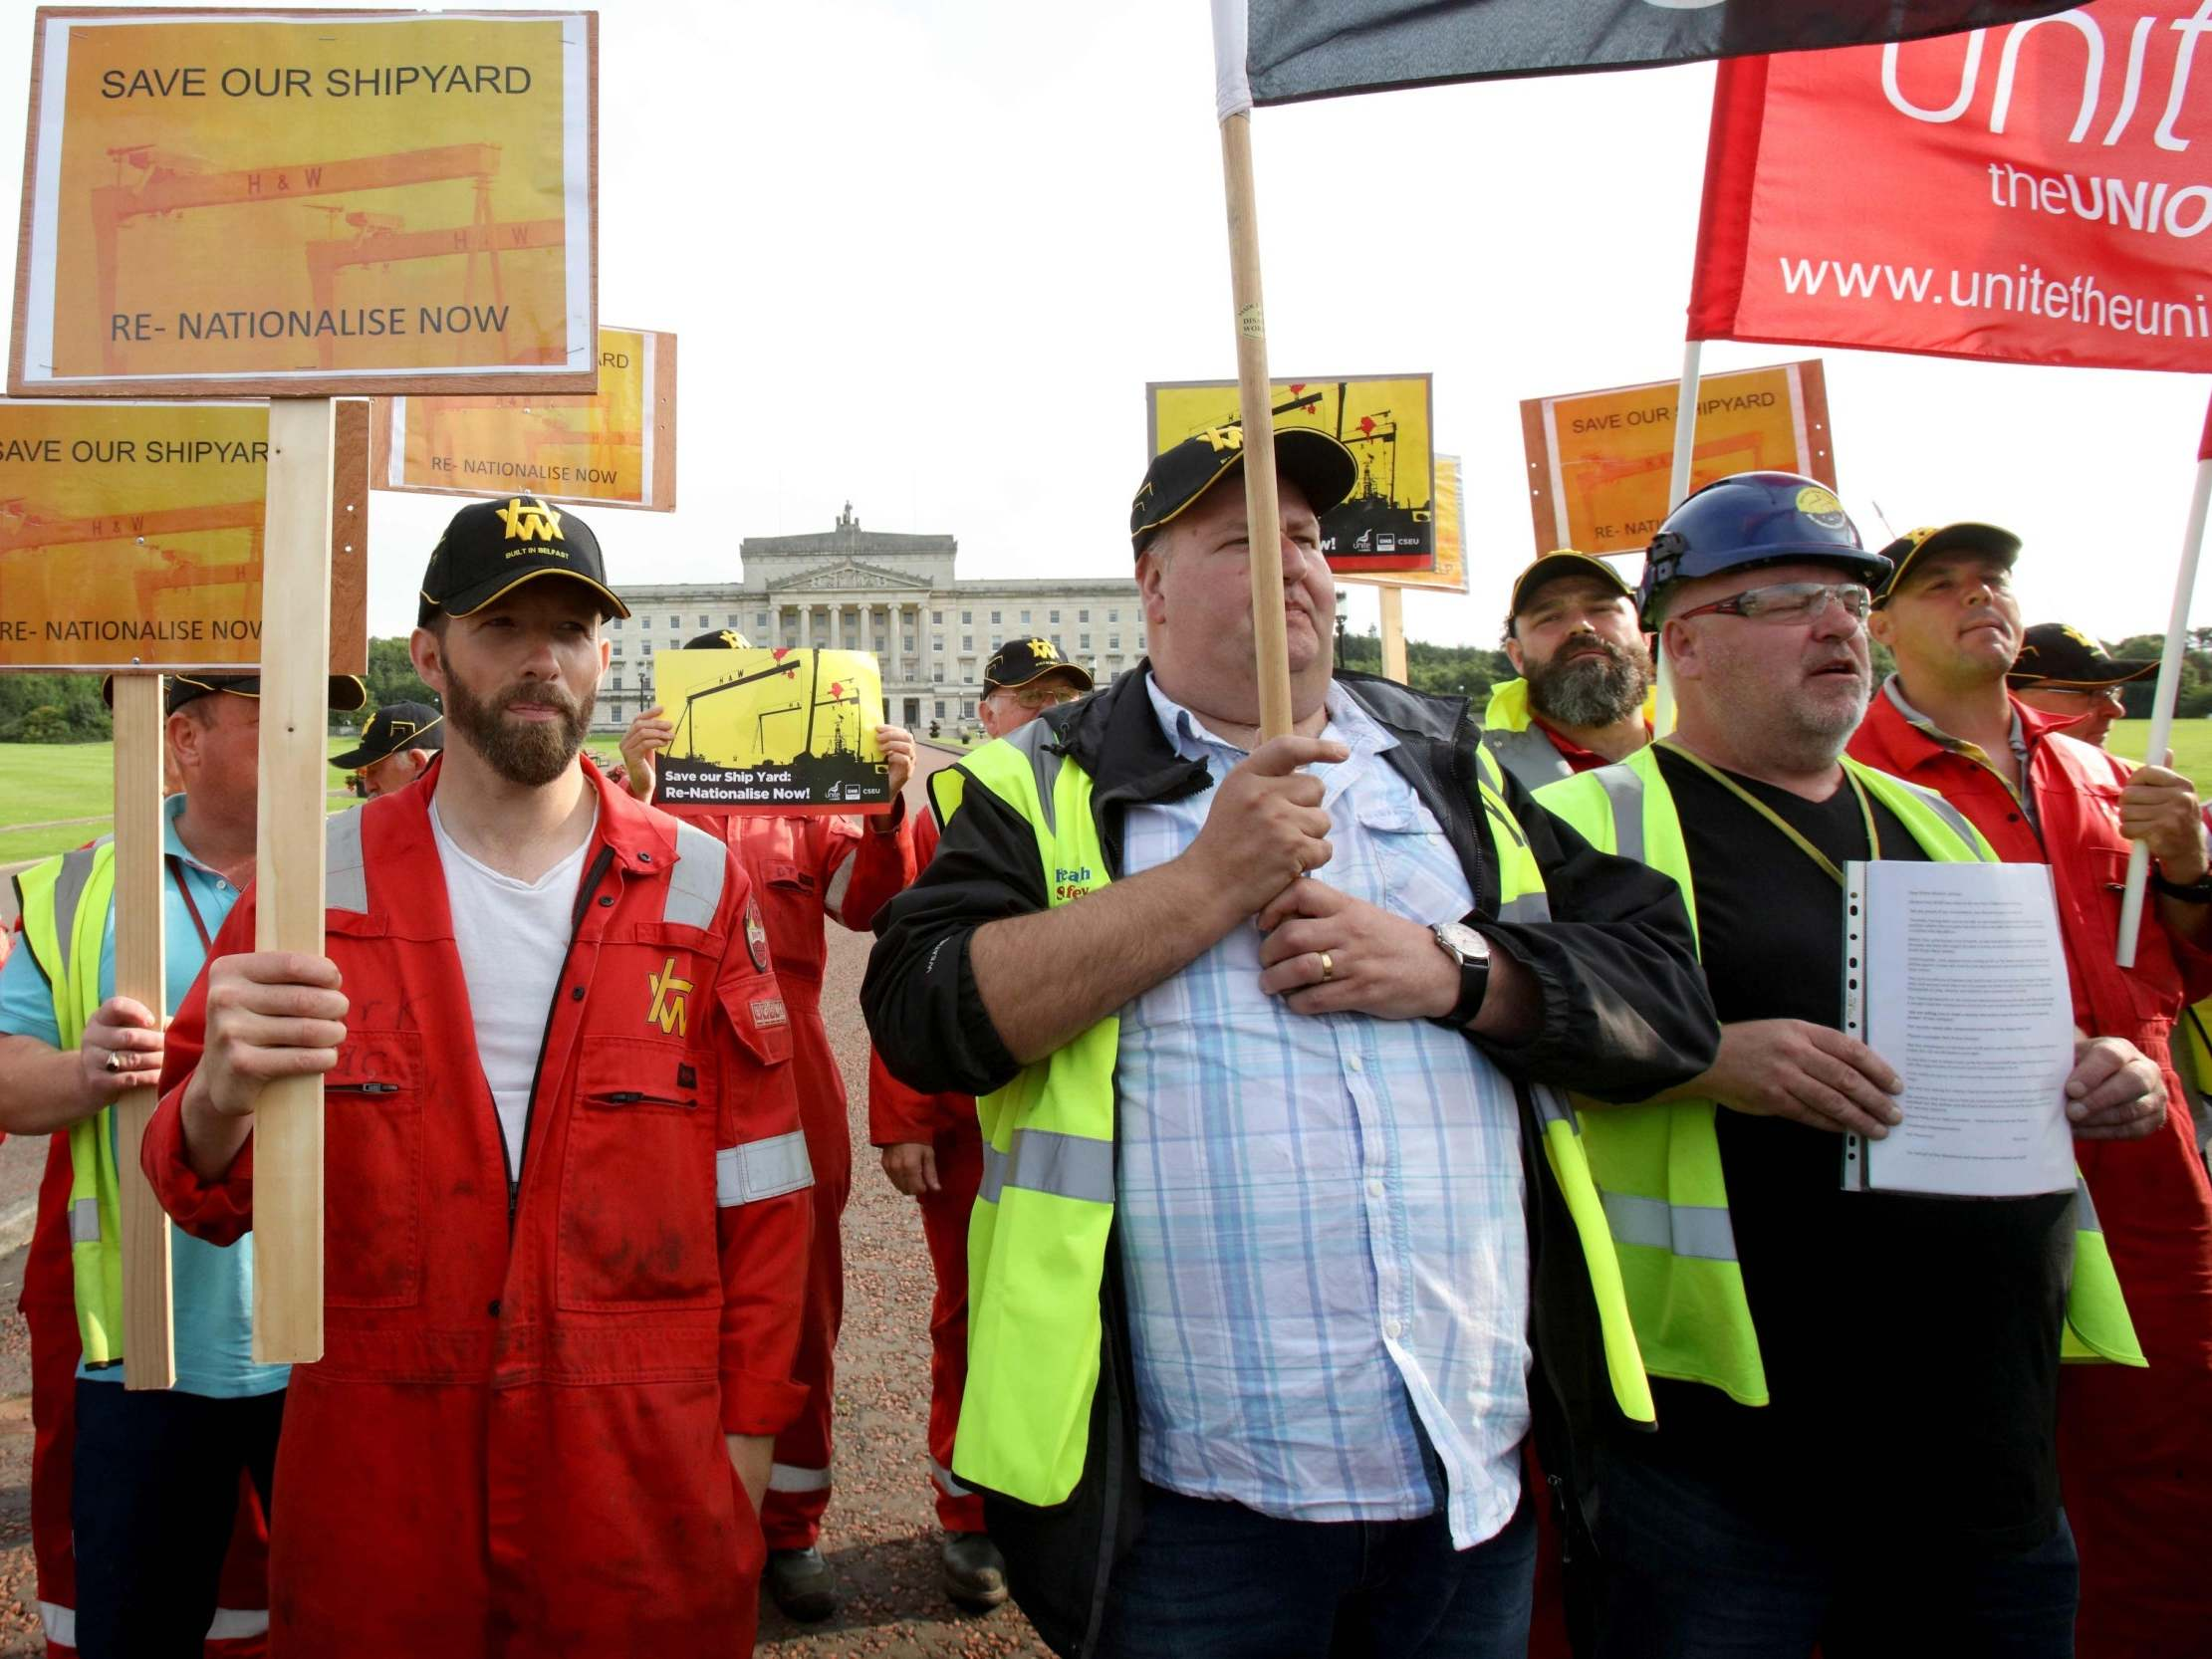 The Harland and Wolff workers want to make renewable energy. A Labour government would help them